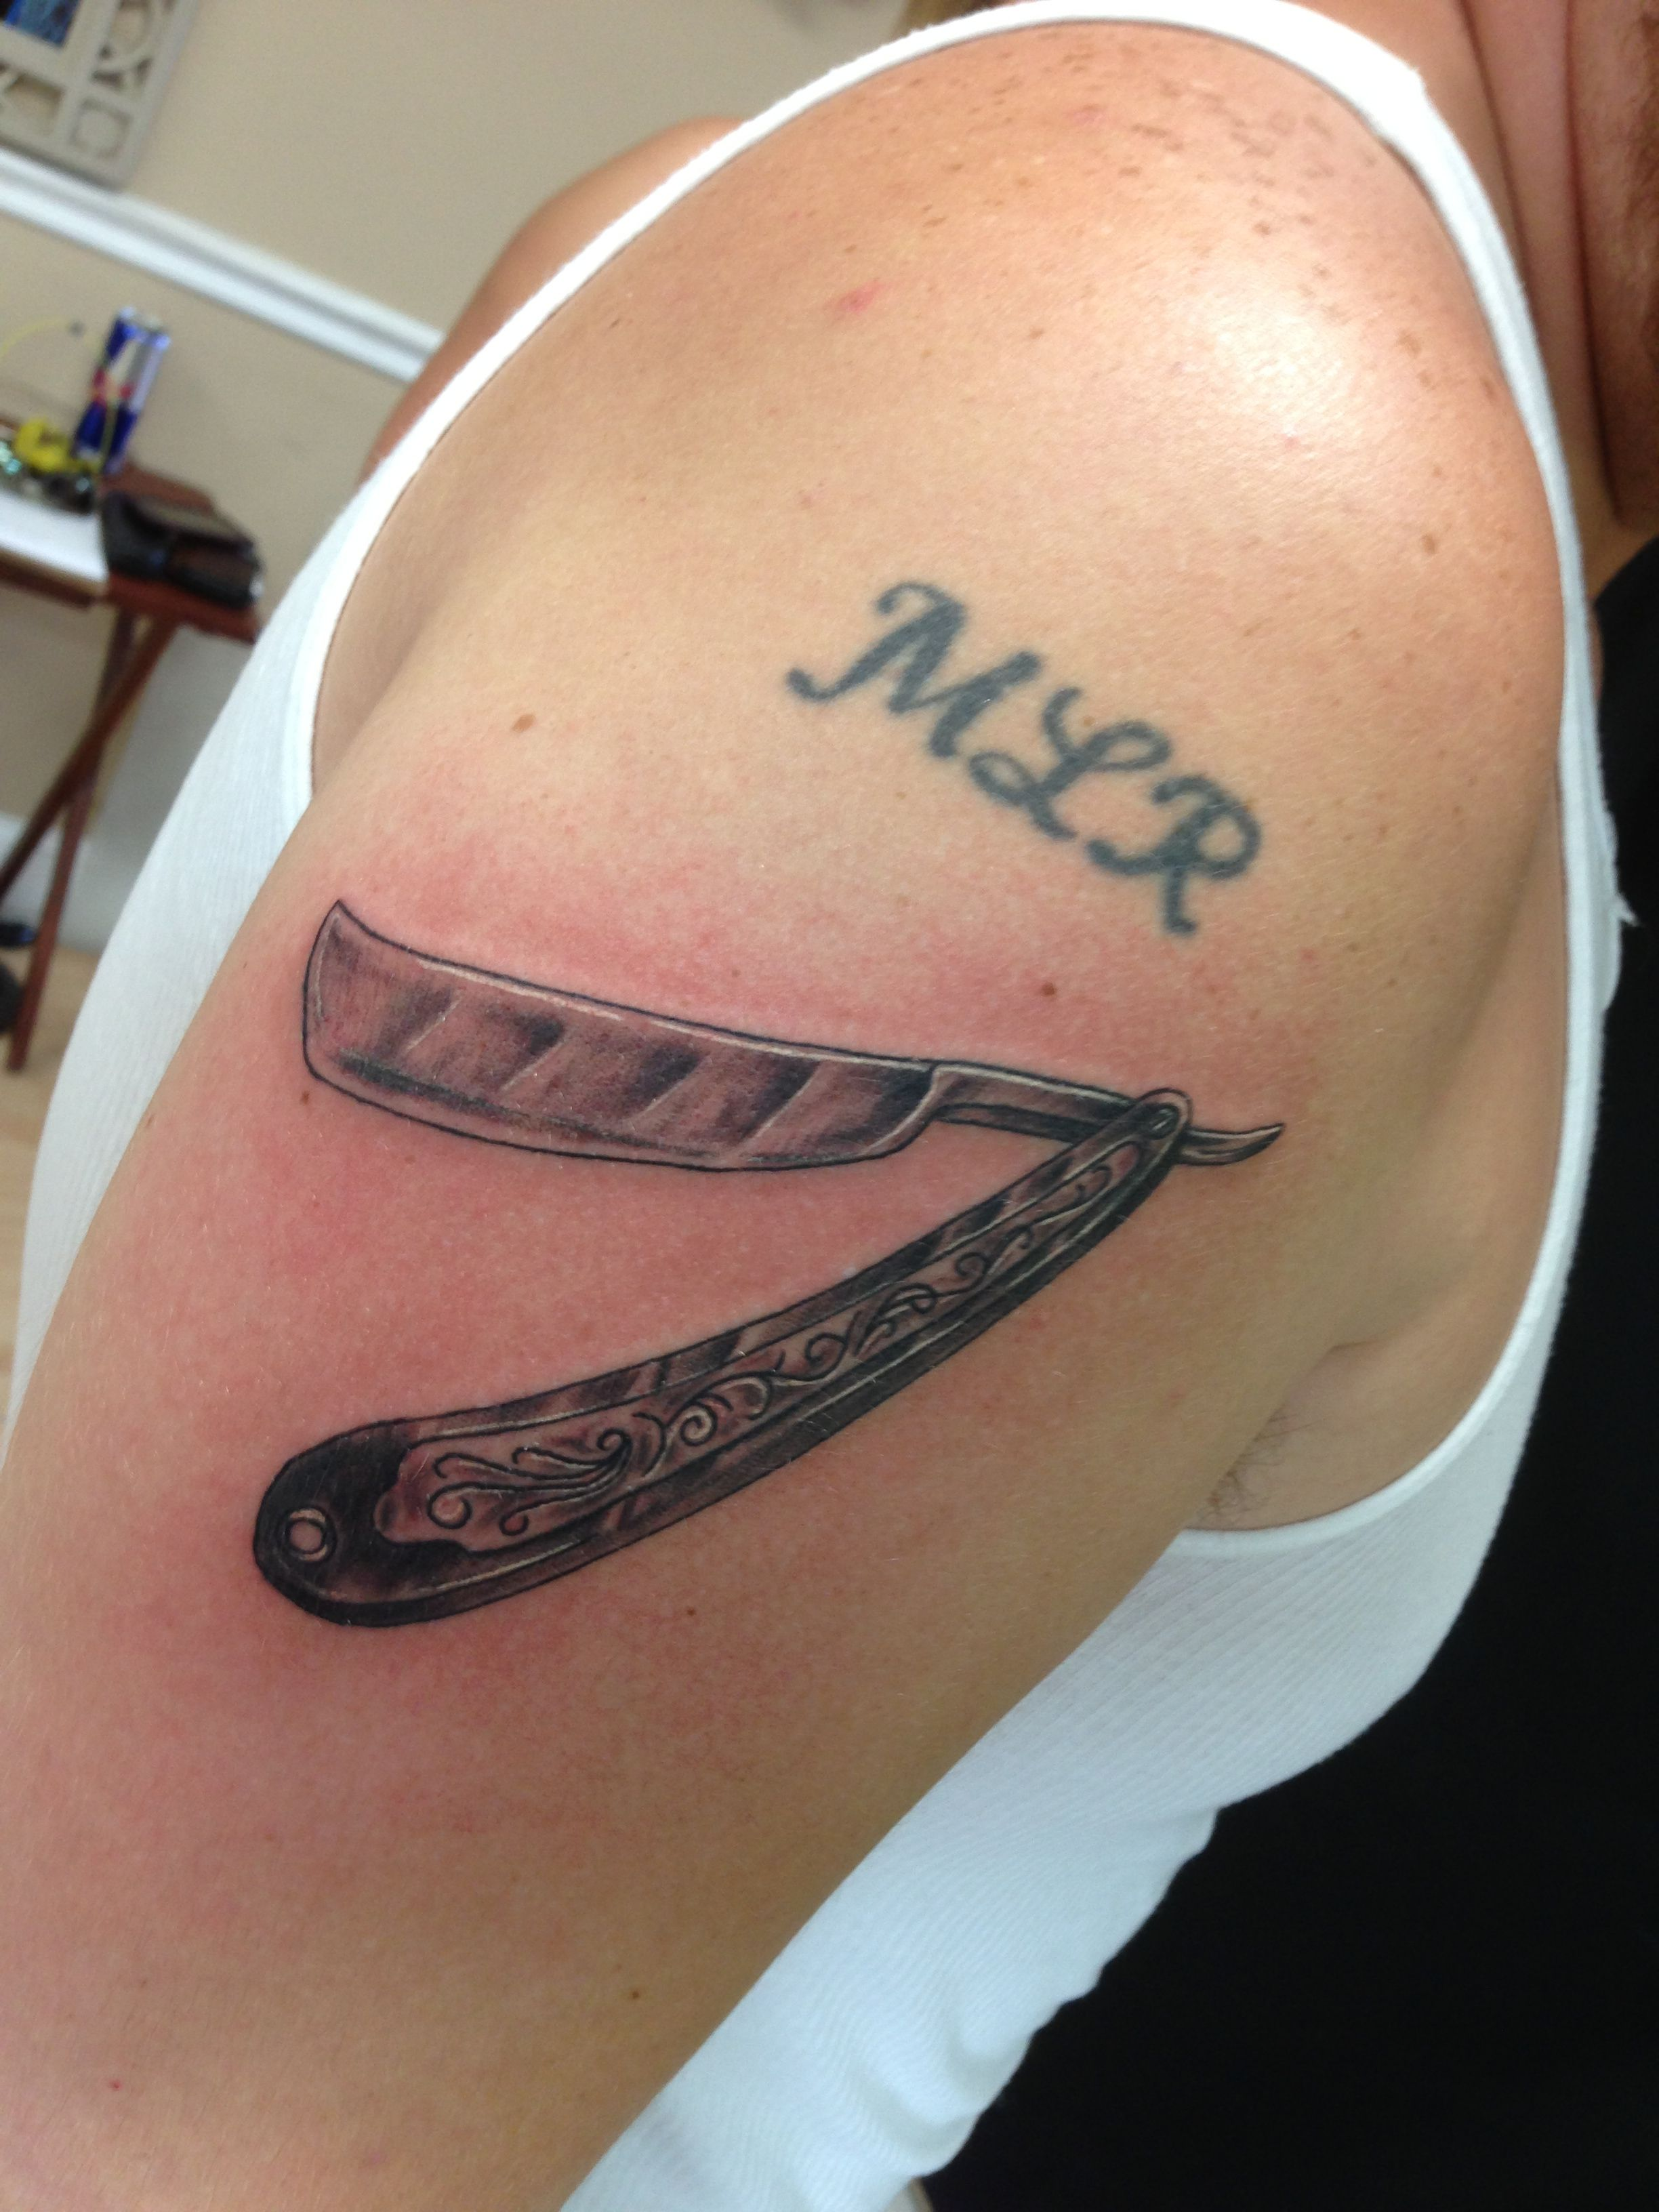 Straight Razor Tattoo Meaning | www.pixshark.com - Images ...